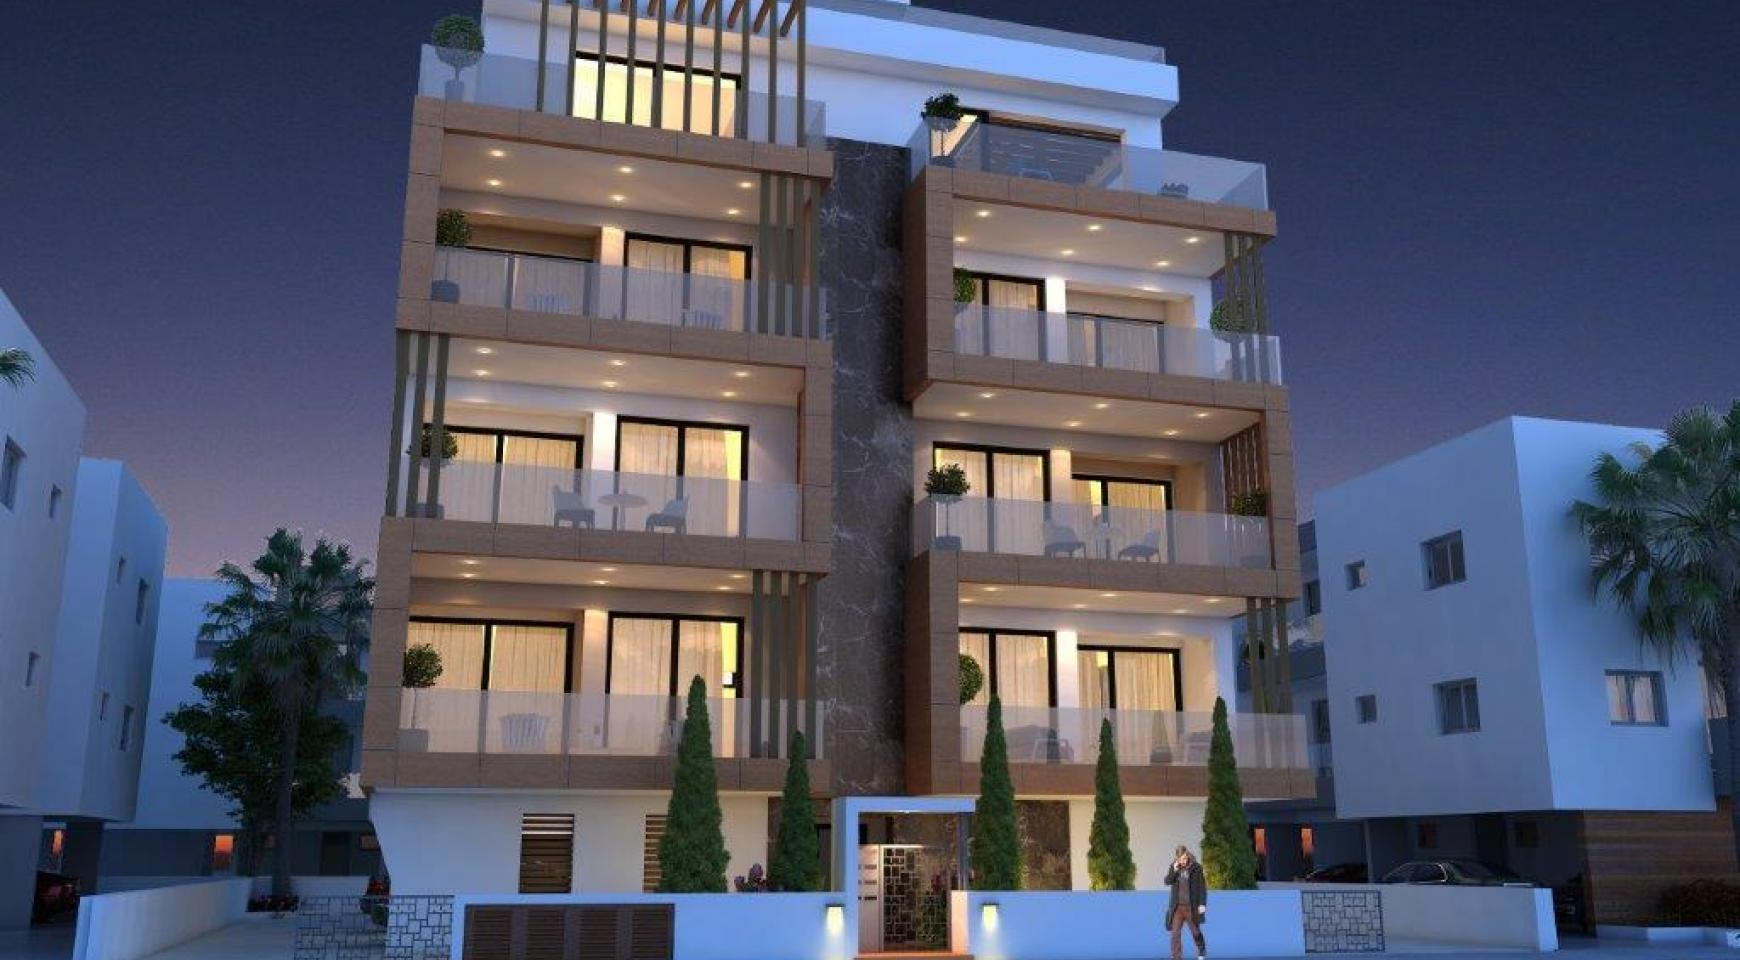 3 Bedroom Penthouse with Sea Views in Enaerios Area - 5